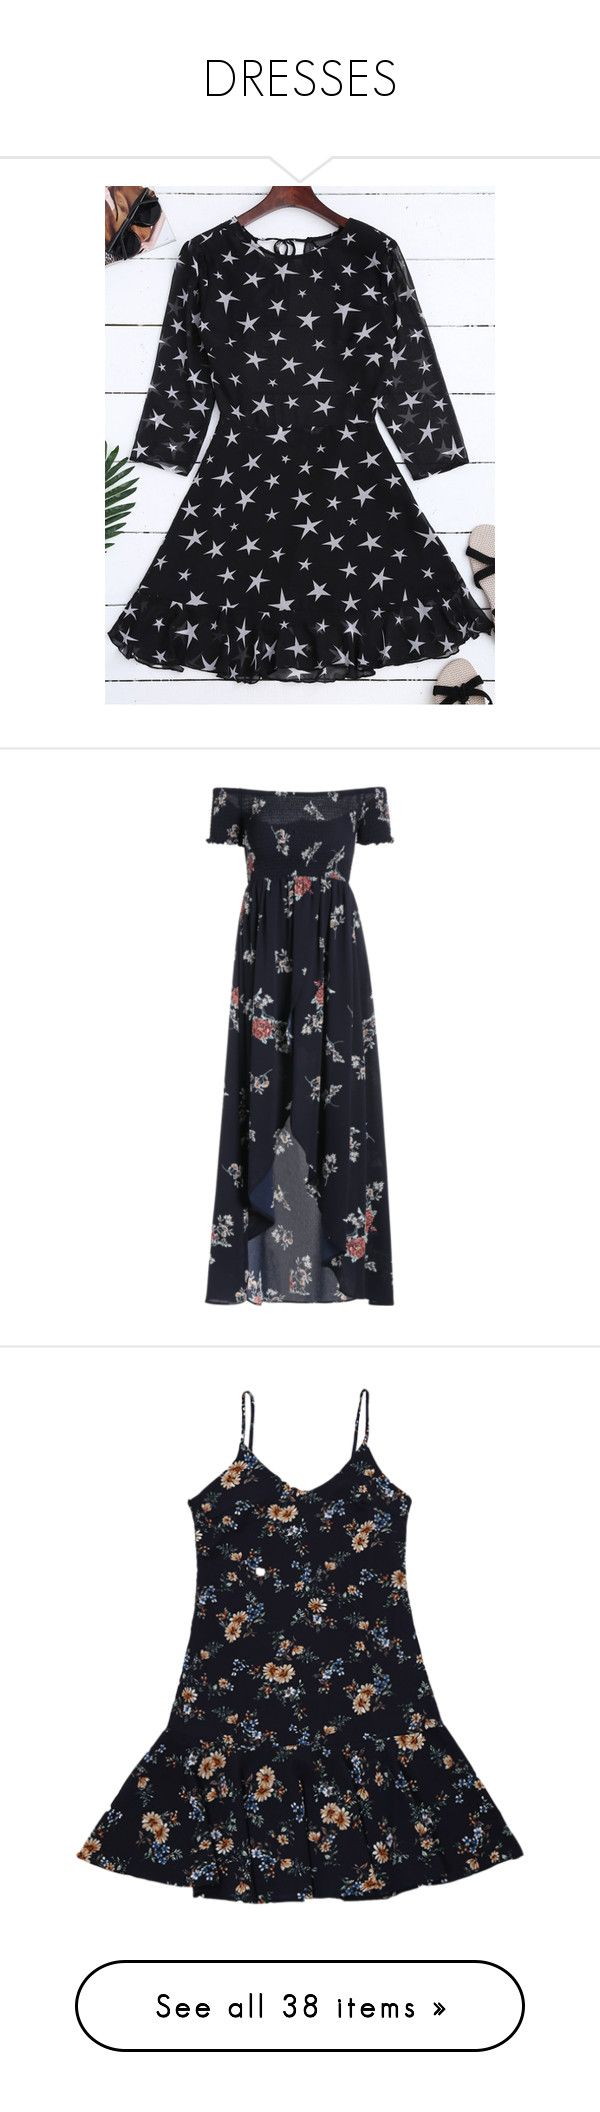 """""""DRESSES"""" by andreabarrazalopez ❤ liked on Polyvore featuring dresses, asymmetrical dresses, off the shoulder dress, maxi dress, off shoulder maxi dress, off the shoulder maxi dress, special occasion dresses, blue floral print dress, holiday dresses and blue sun dress"""